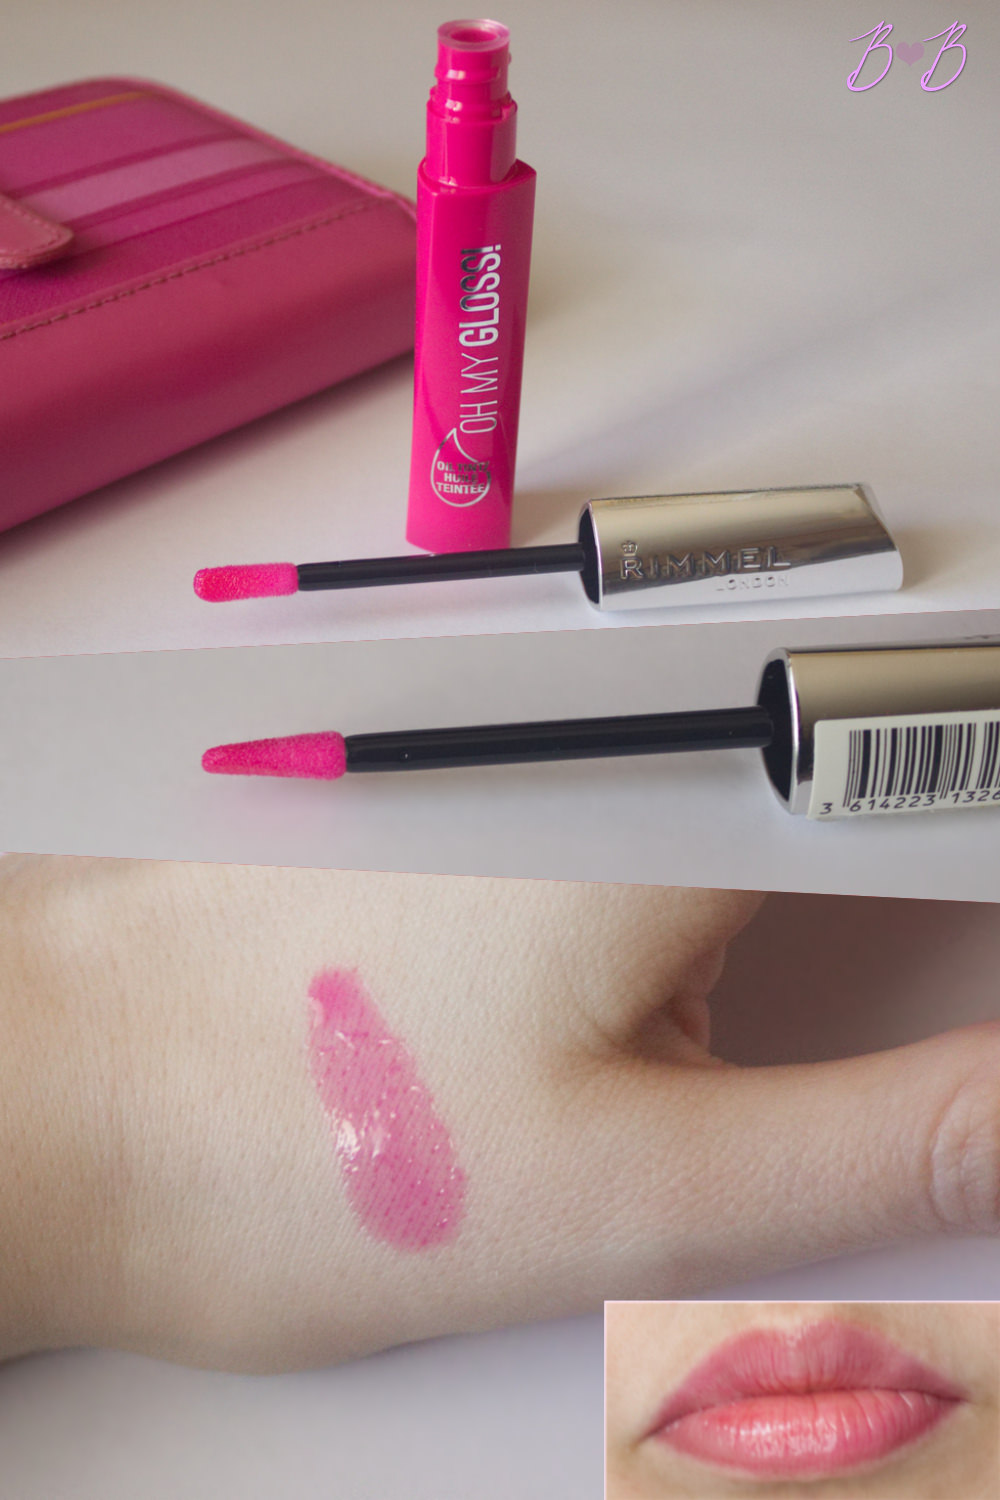 Rimmel Oh my gloss! oil tint in 300 Modern pink сватцхес